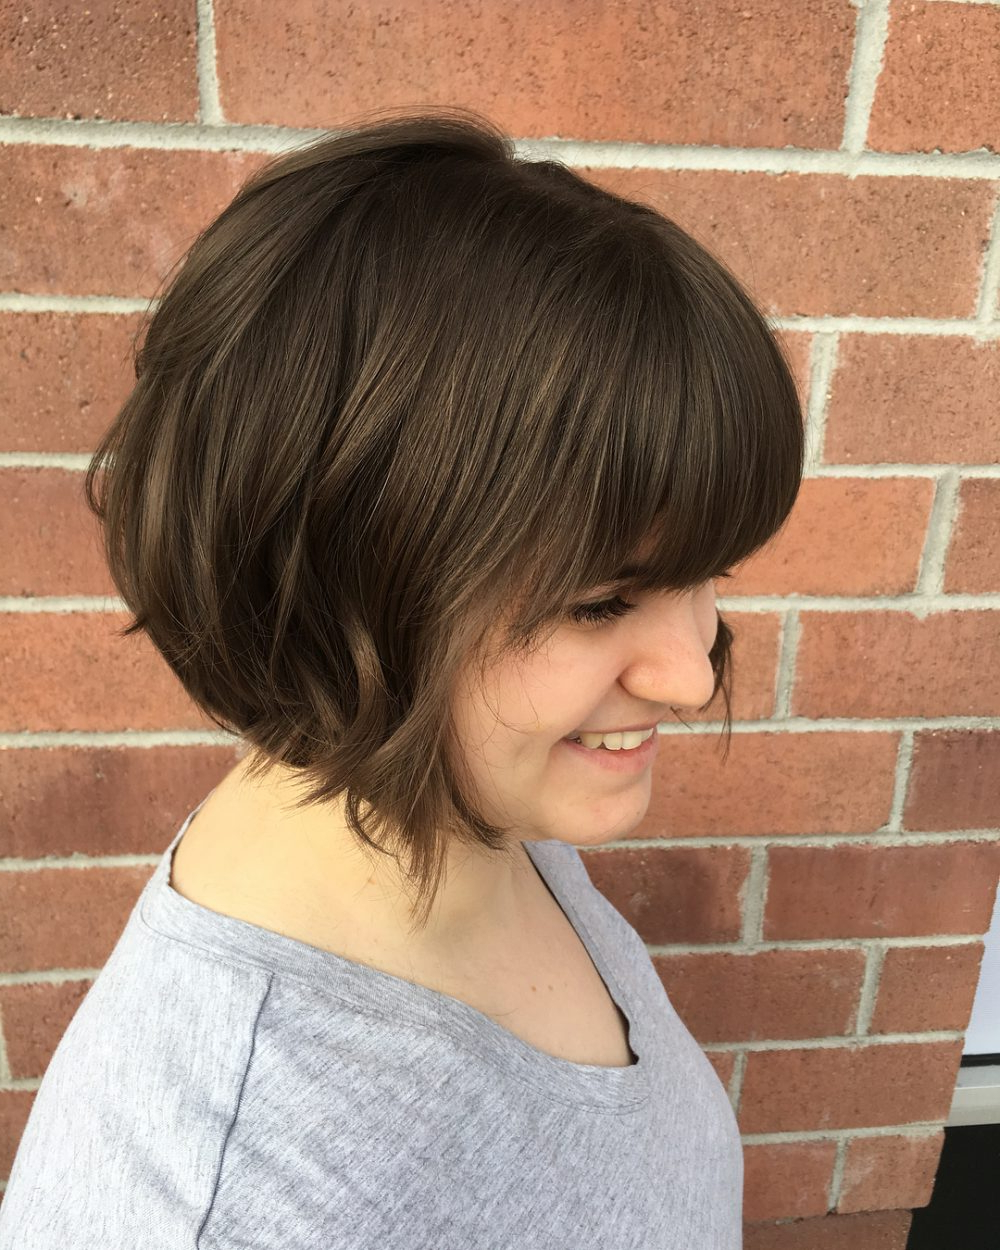 34 Greatest Short Haircuts And Hairstyles For Thick Hair For 2018 For Short And Classy Haircuts For Thick Hair (View 8 of 20)